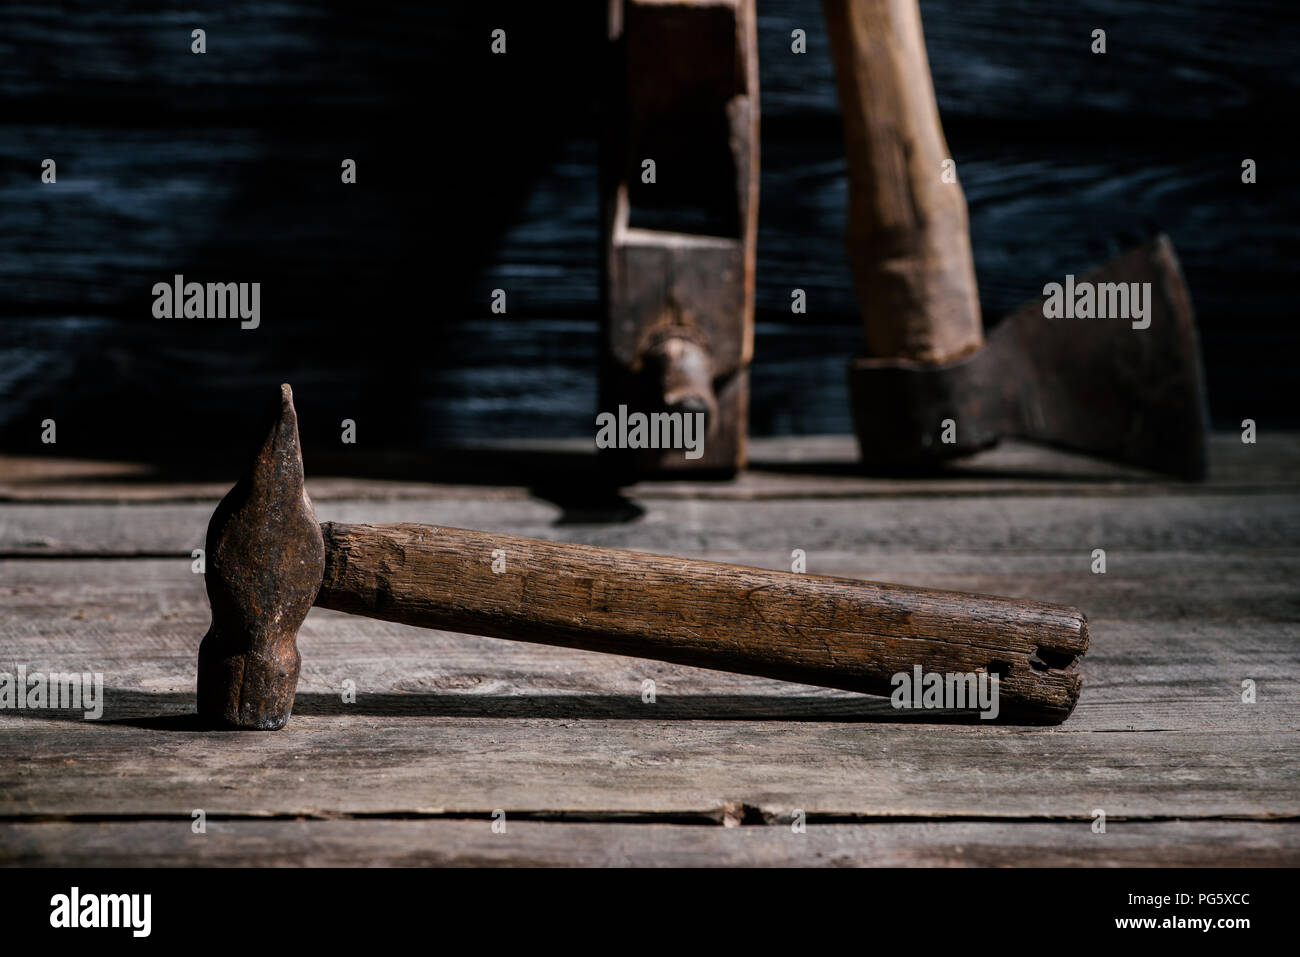 selective focus of vintage carpentry tools arranged on wooden tabletop - Stock Image